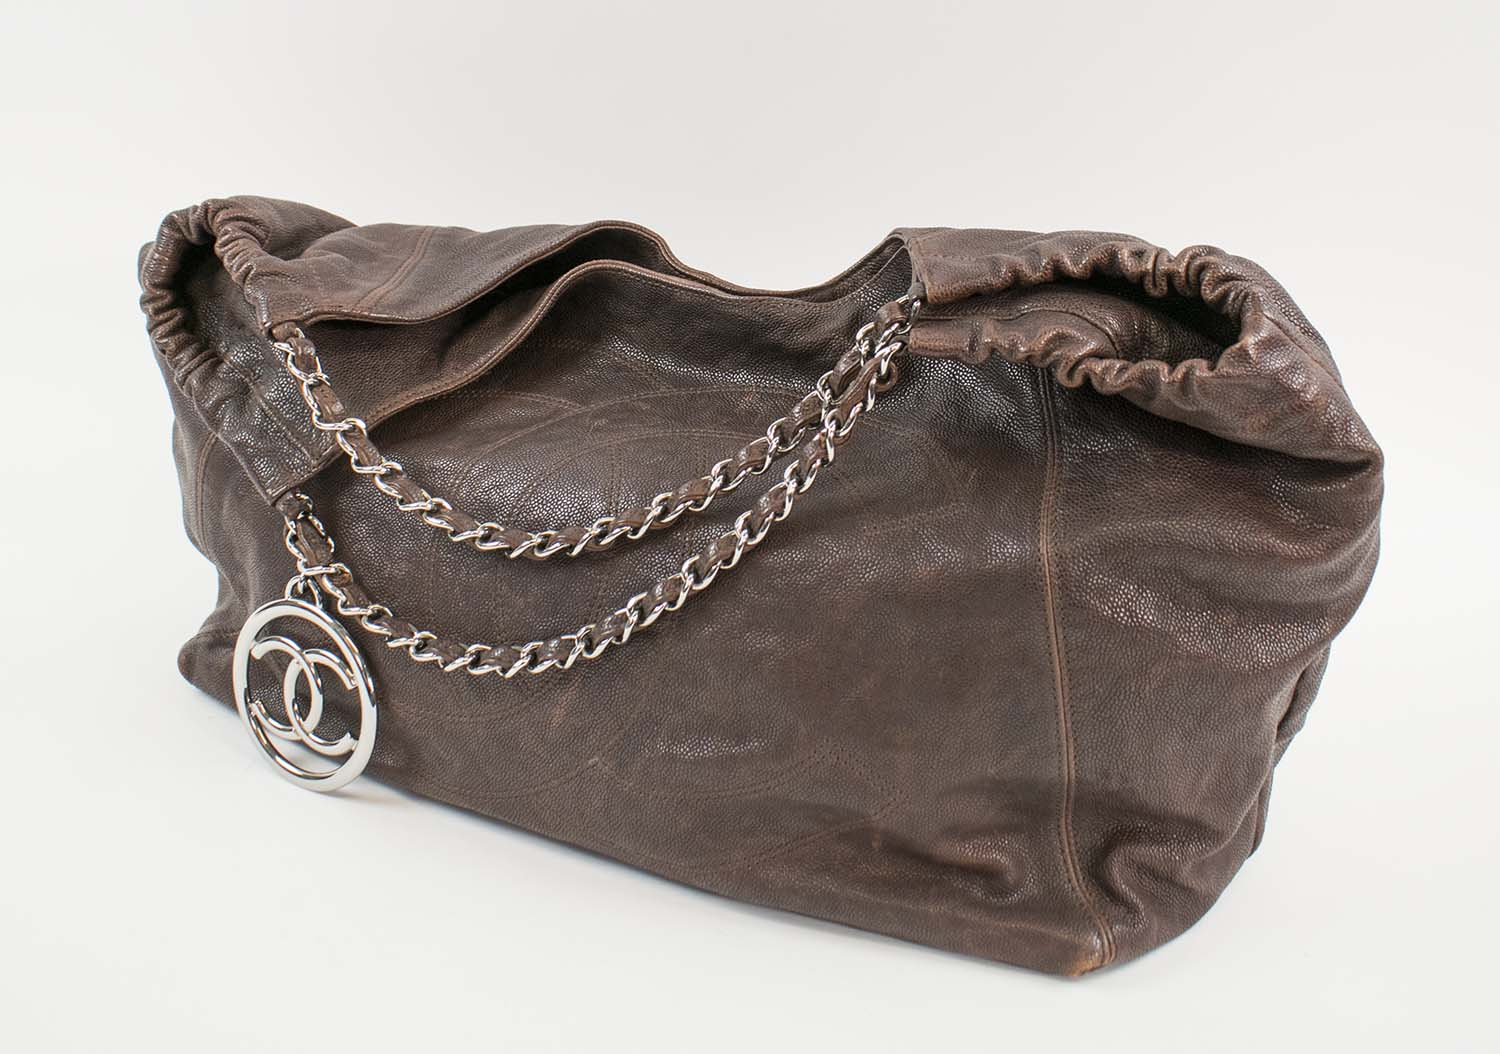 1c7855af3aef CHANEL COCO CABAS HOBO BAG, brown leather grain with silver tone charm,  leather and chain shoulder strap, logo embossed, fabric lining, inside  sticker ...